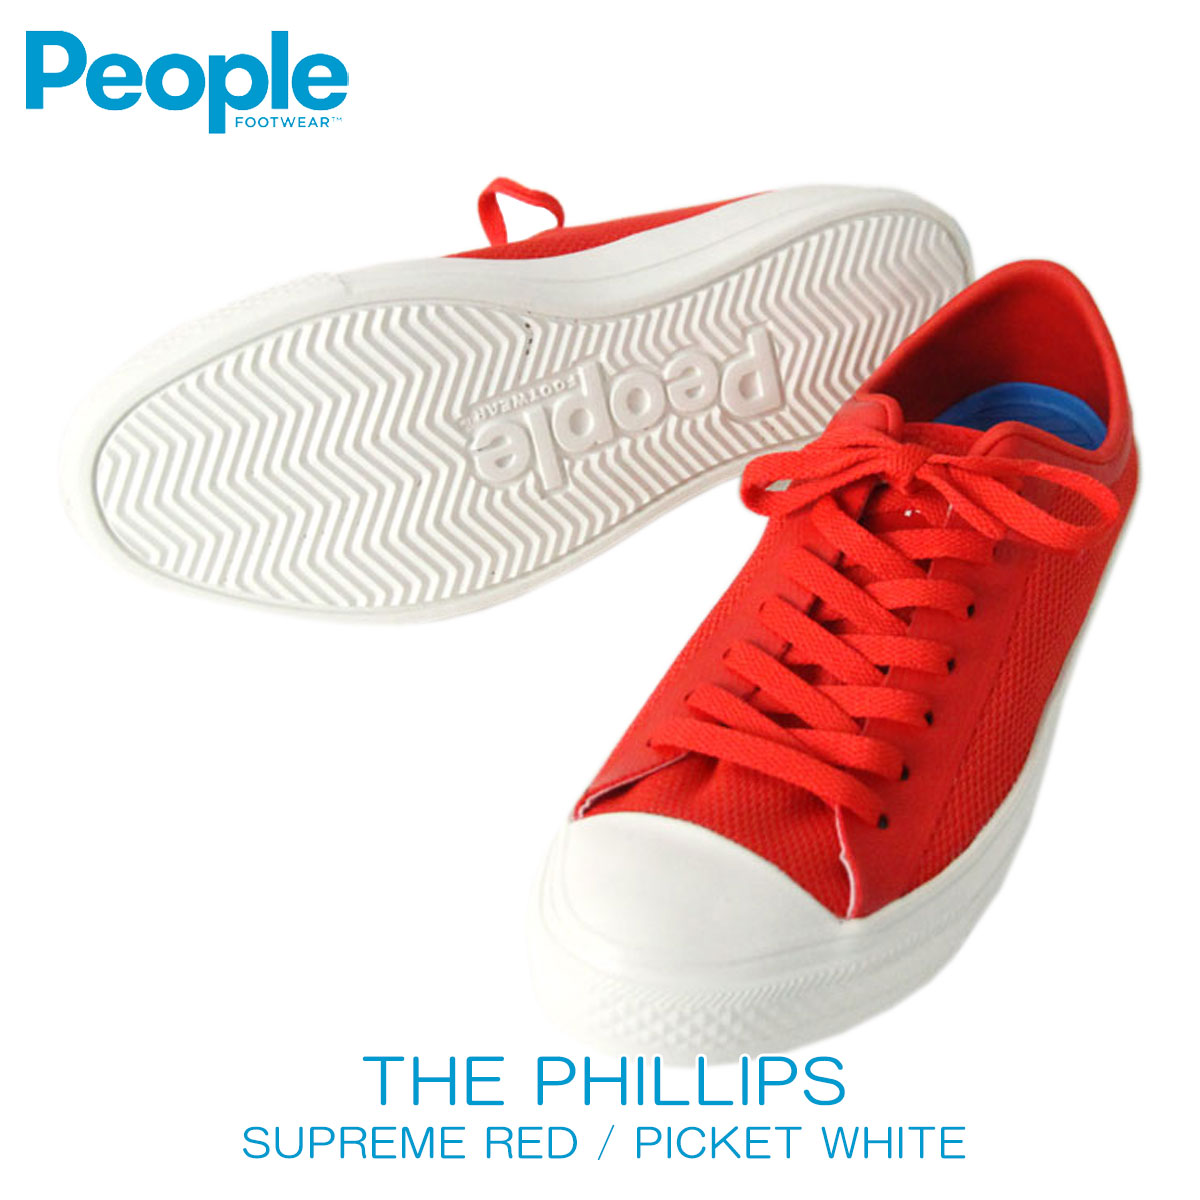 People footwear People Footwear regular store men shoes shoes THE PHILLIPS  NC01-002 SUPREME RED   PICKET WHITE D20S30 a7c4bbb5c